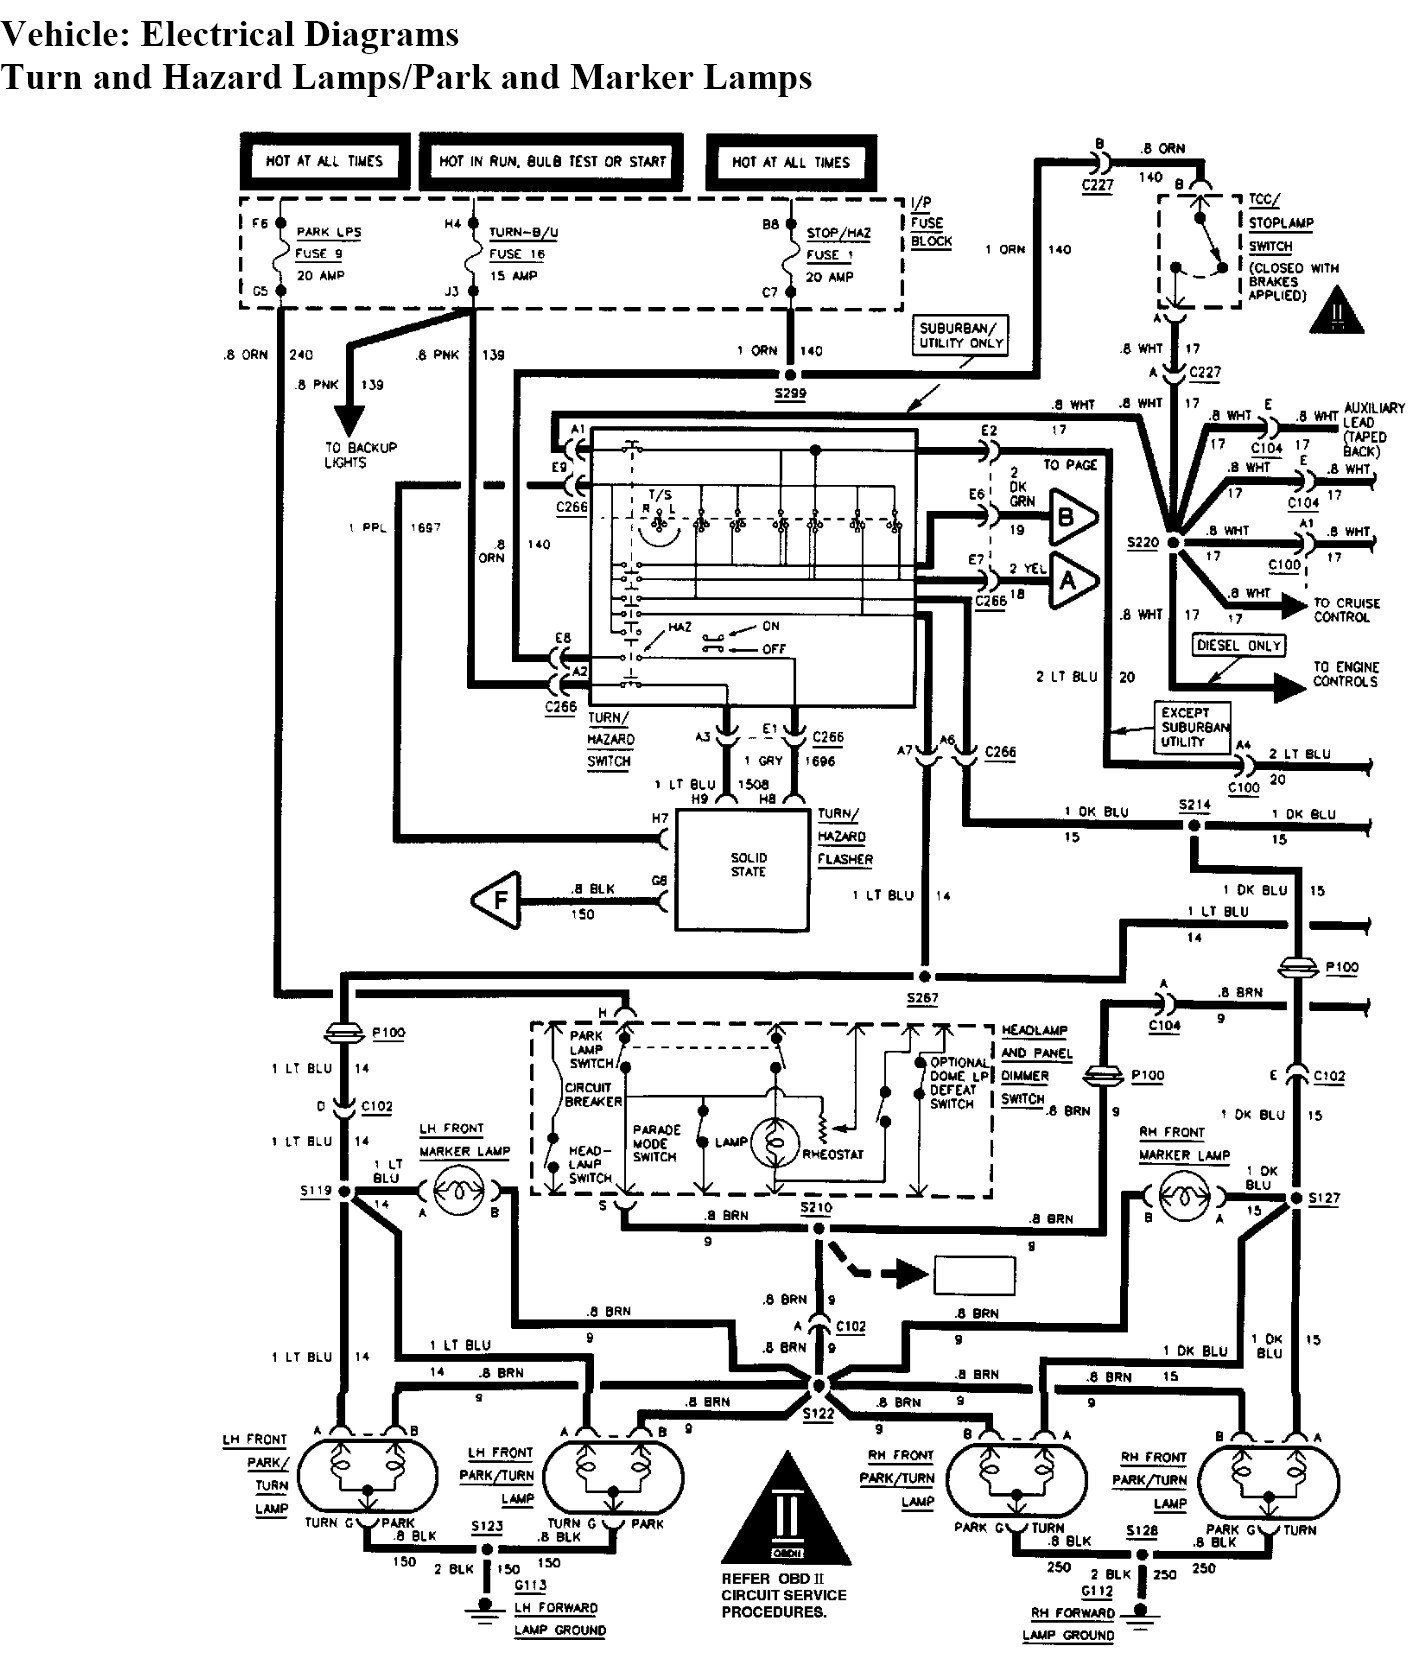 1999 Jeep Cherokee Headlight Wiring Diagram Solutions 1991 Sport Harness Exhaust Diagrams